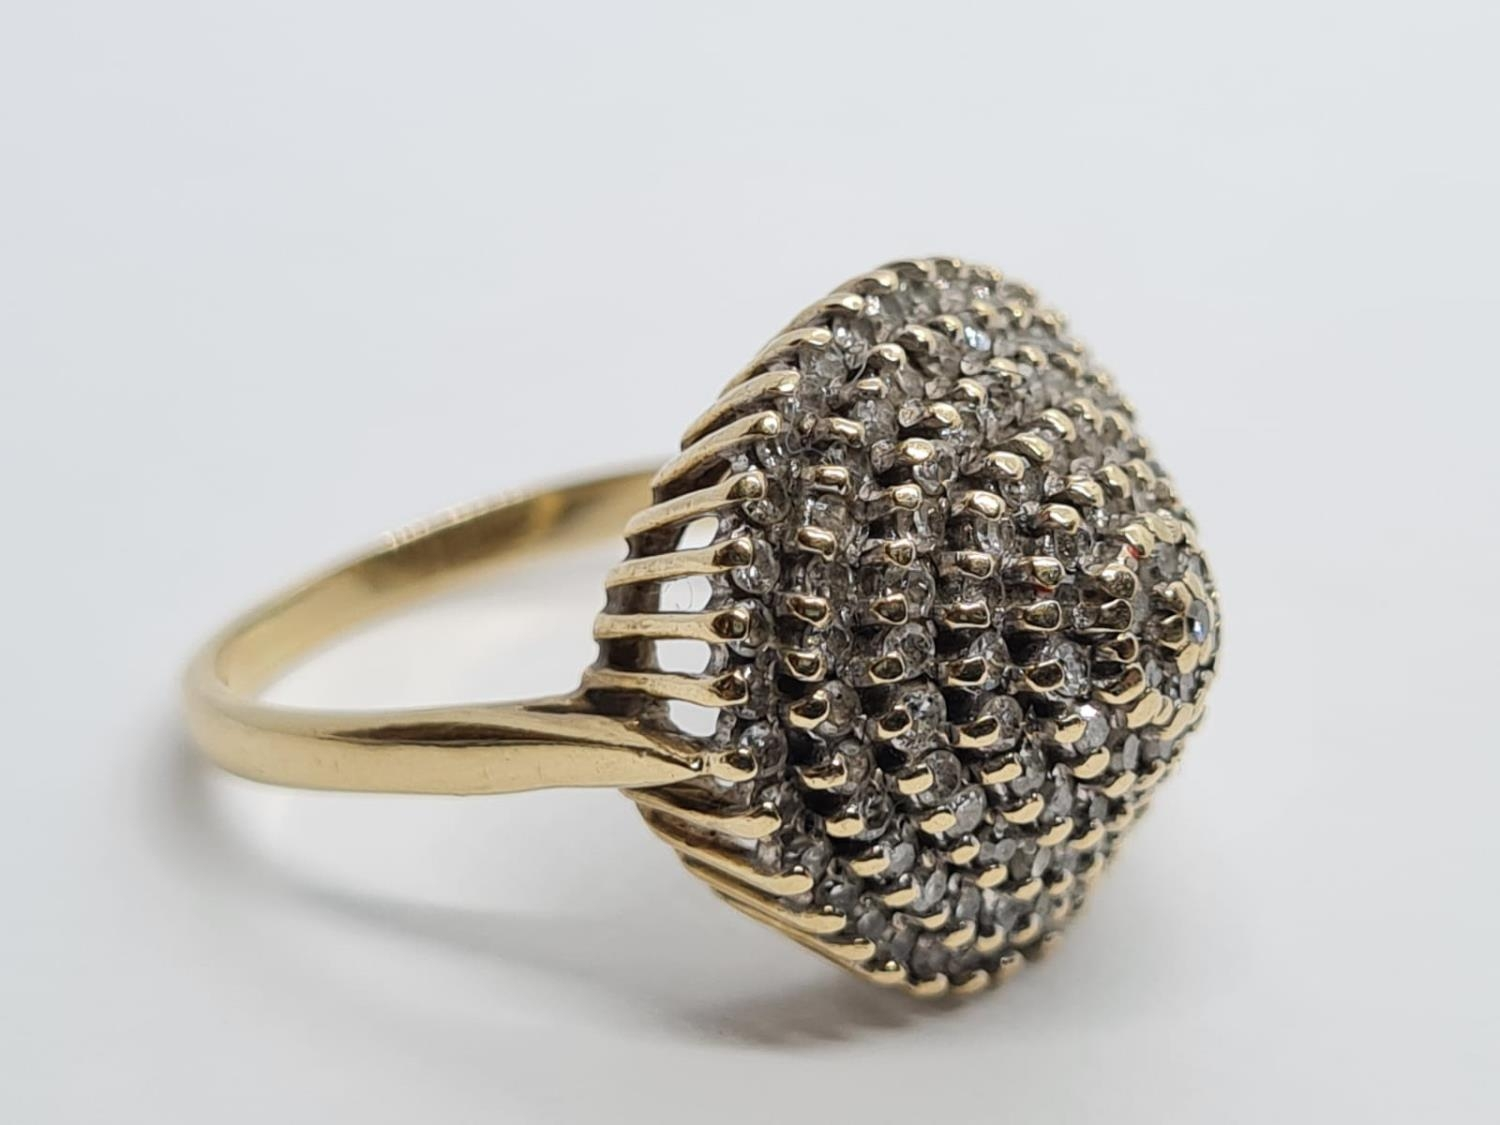 9K YELLOW GOLD VINTAGE DIAMOND CLUSTER RING WEIGHT 5.5G SIZE O - Image 3 of 7